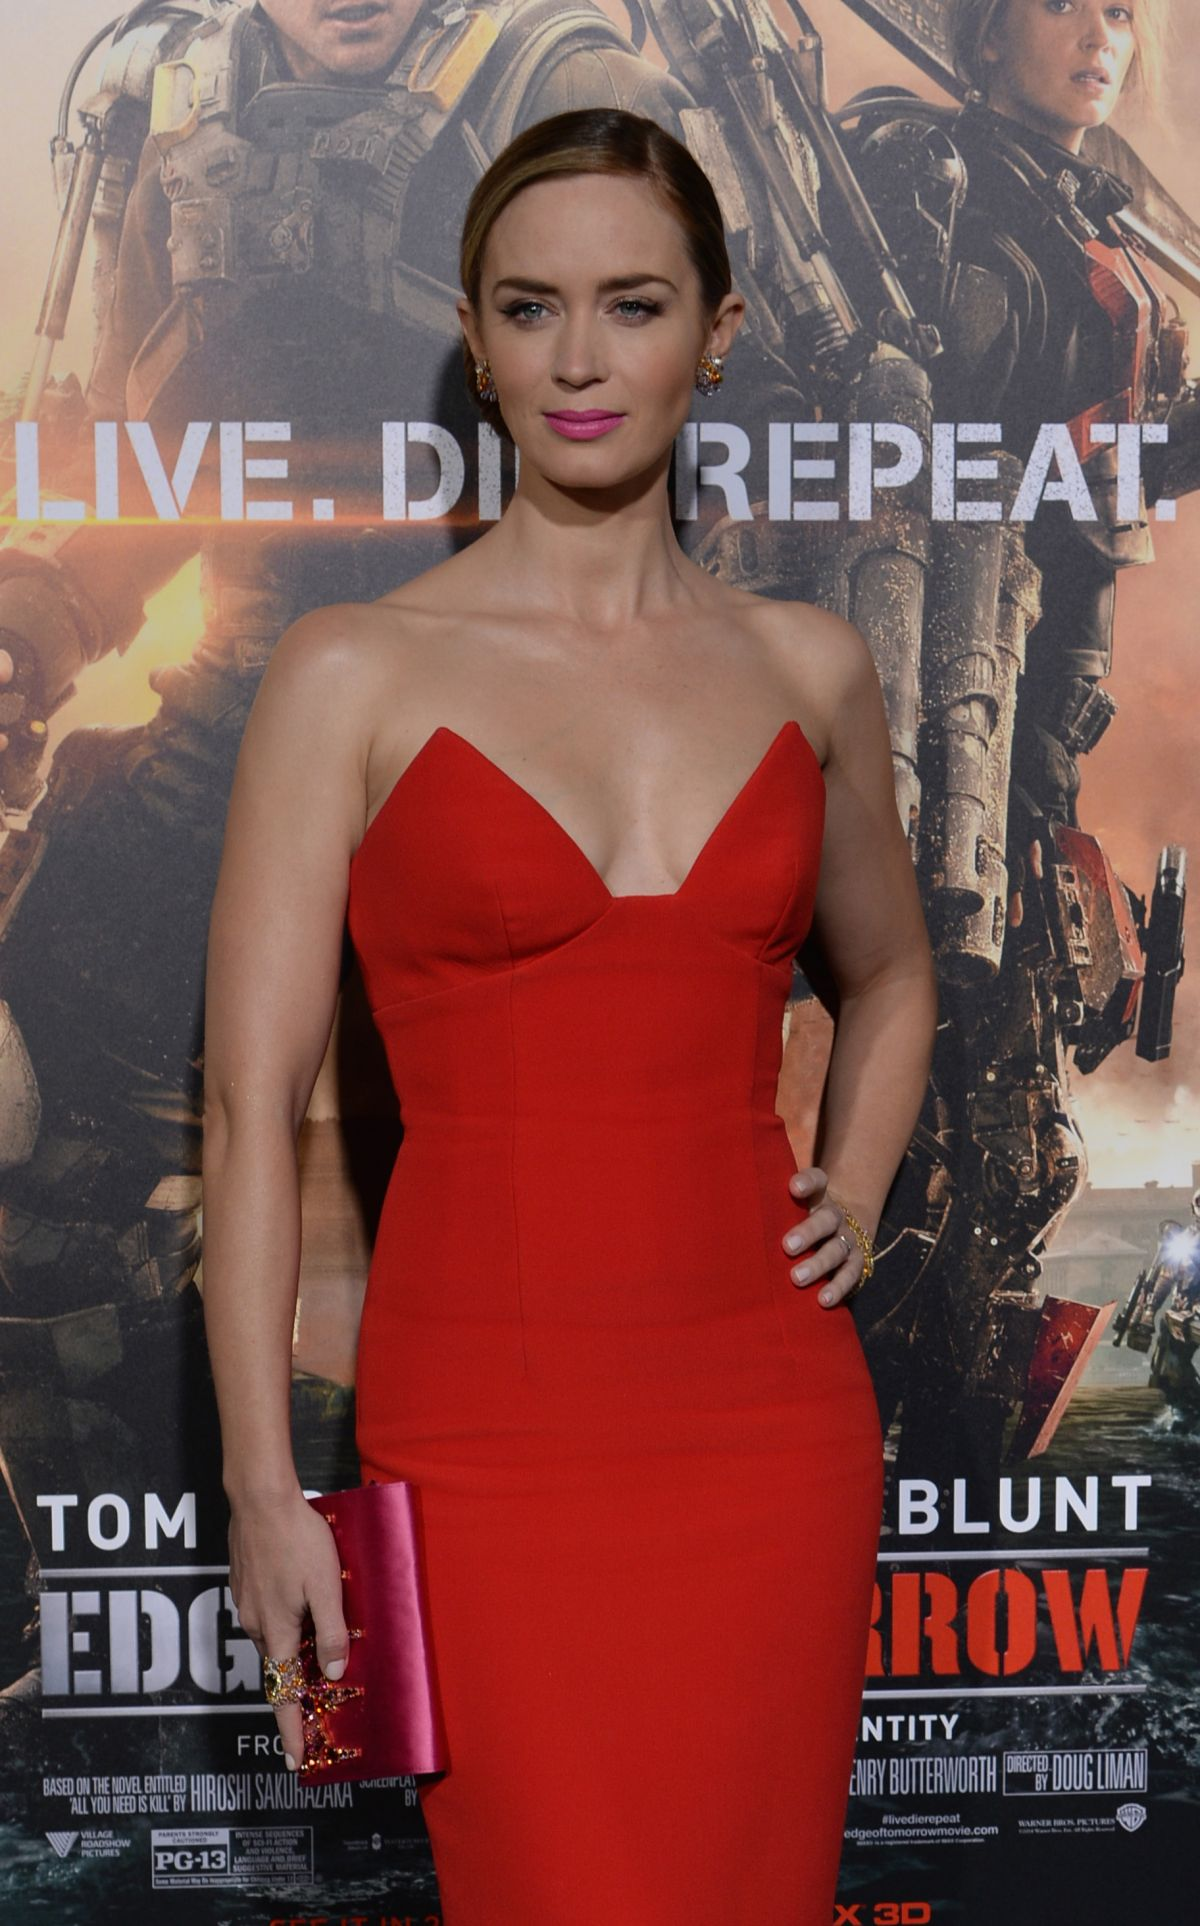 New York Premiere of Edge Of Tomorrow with Emily Blunt in sexy red dress